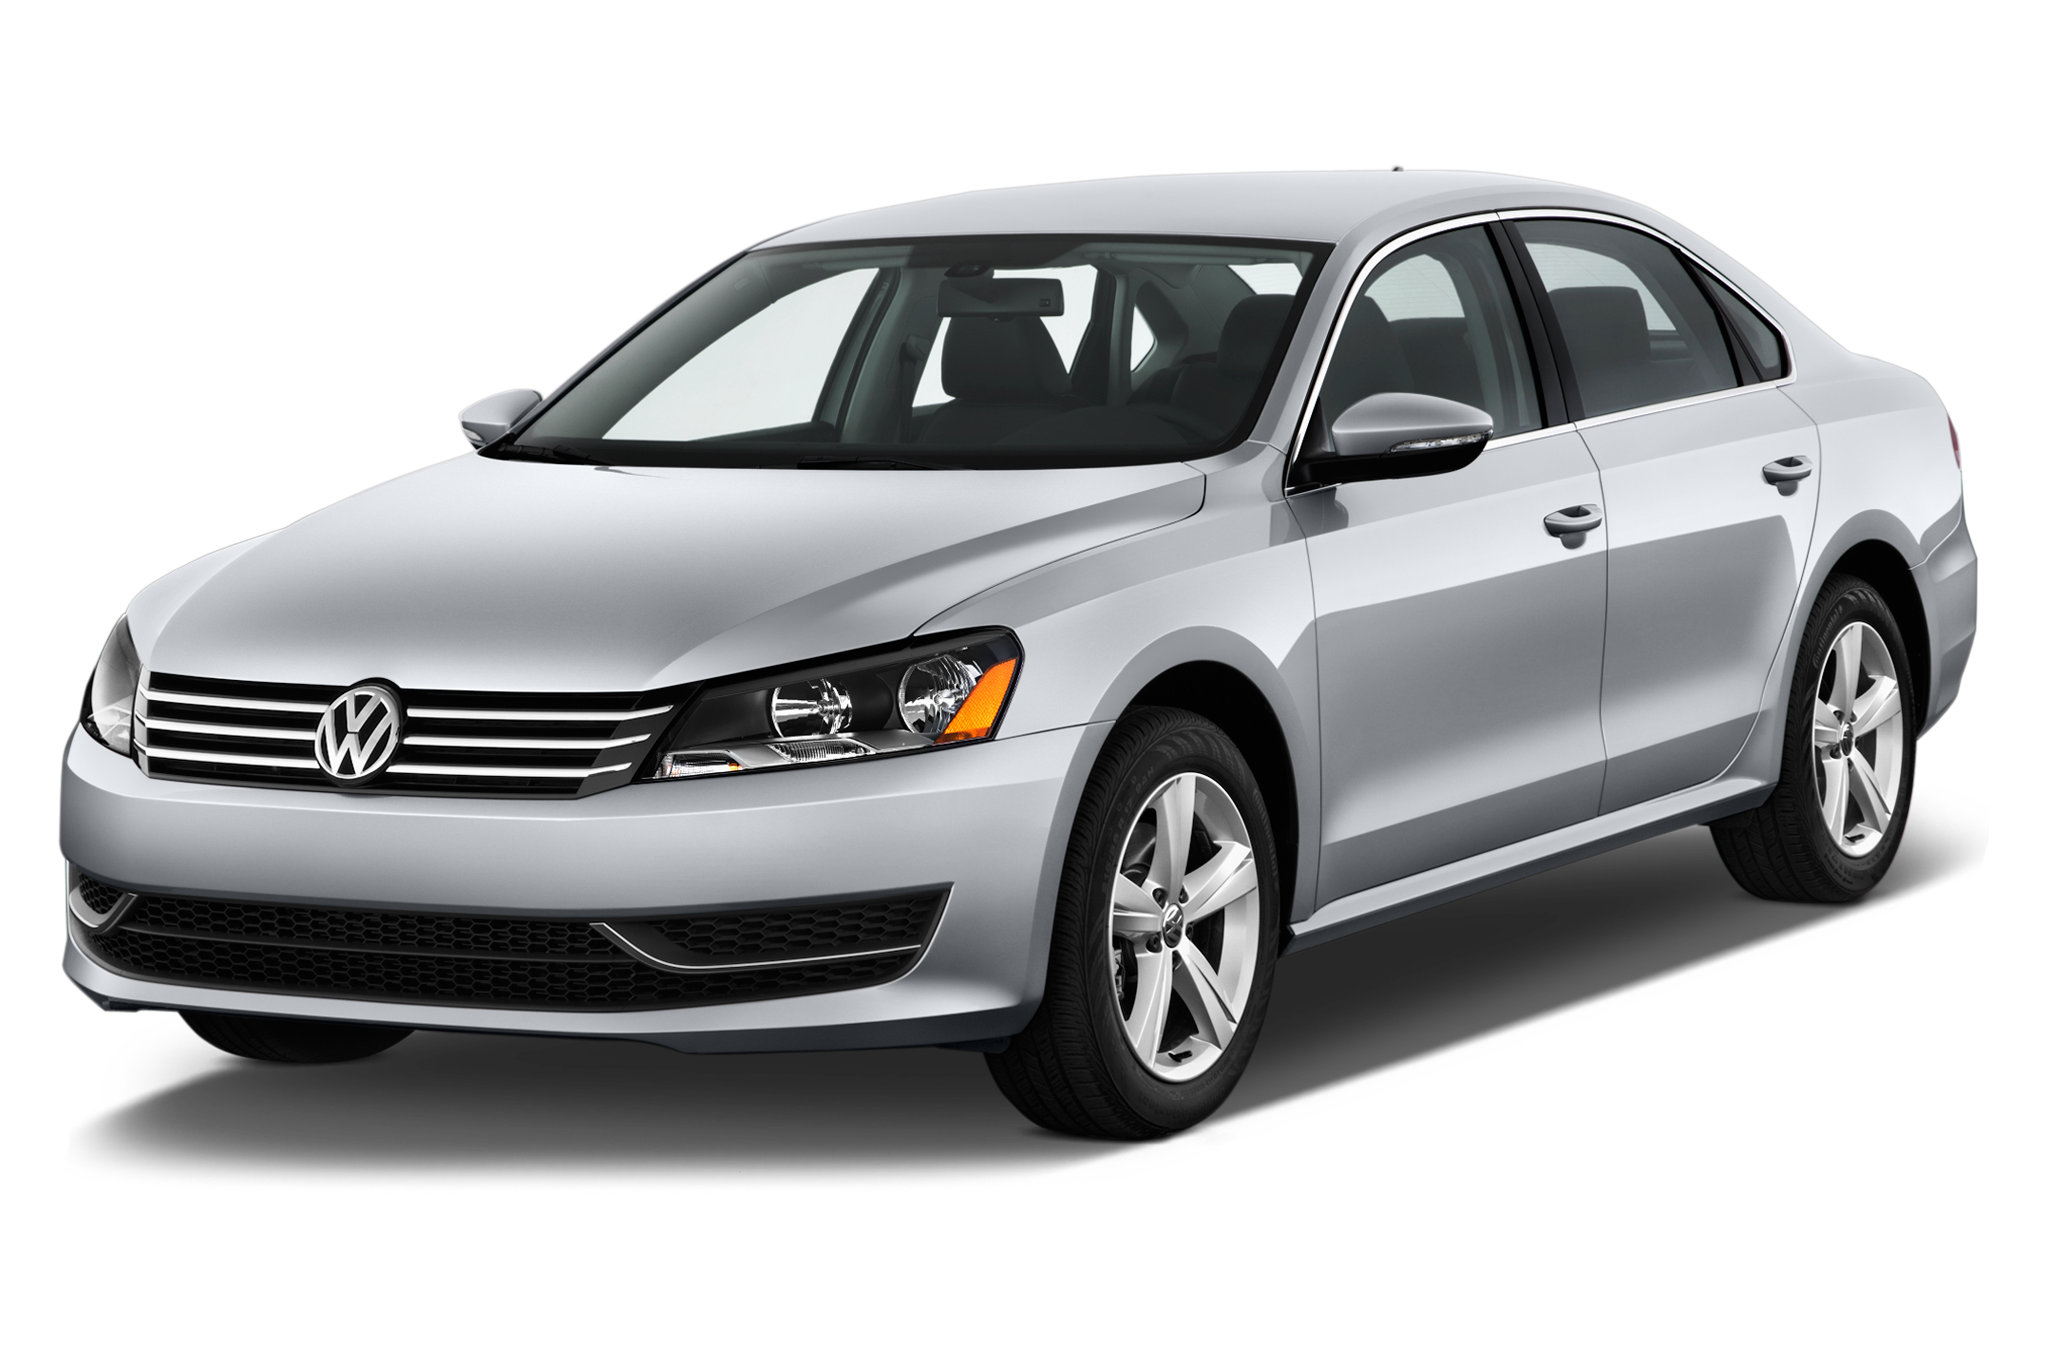 2015 volkswagen passat limited edition replaces se wolfsburg trims. Black Bedroom Furniture Sets. Home Design Ideas